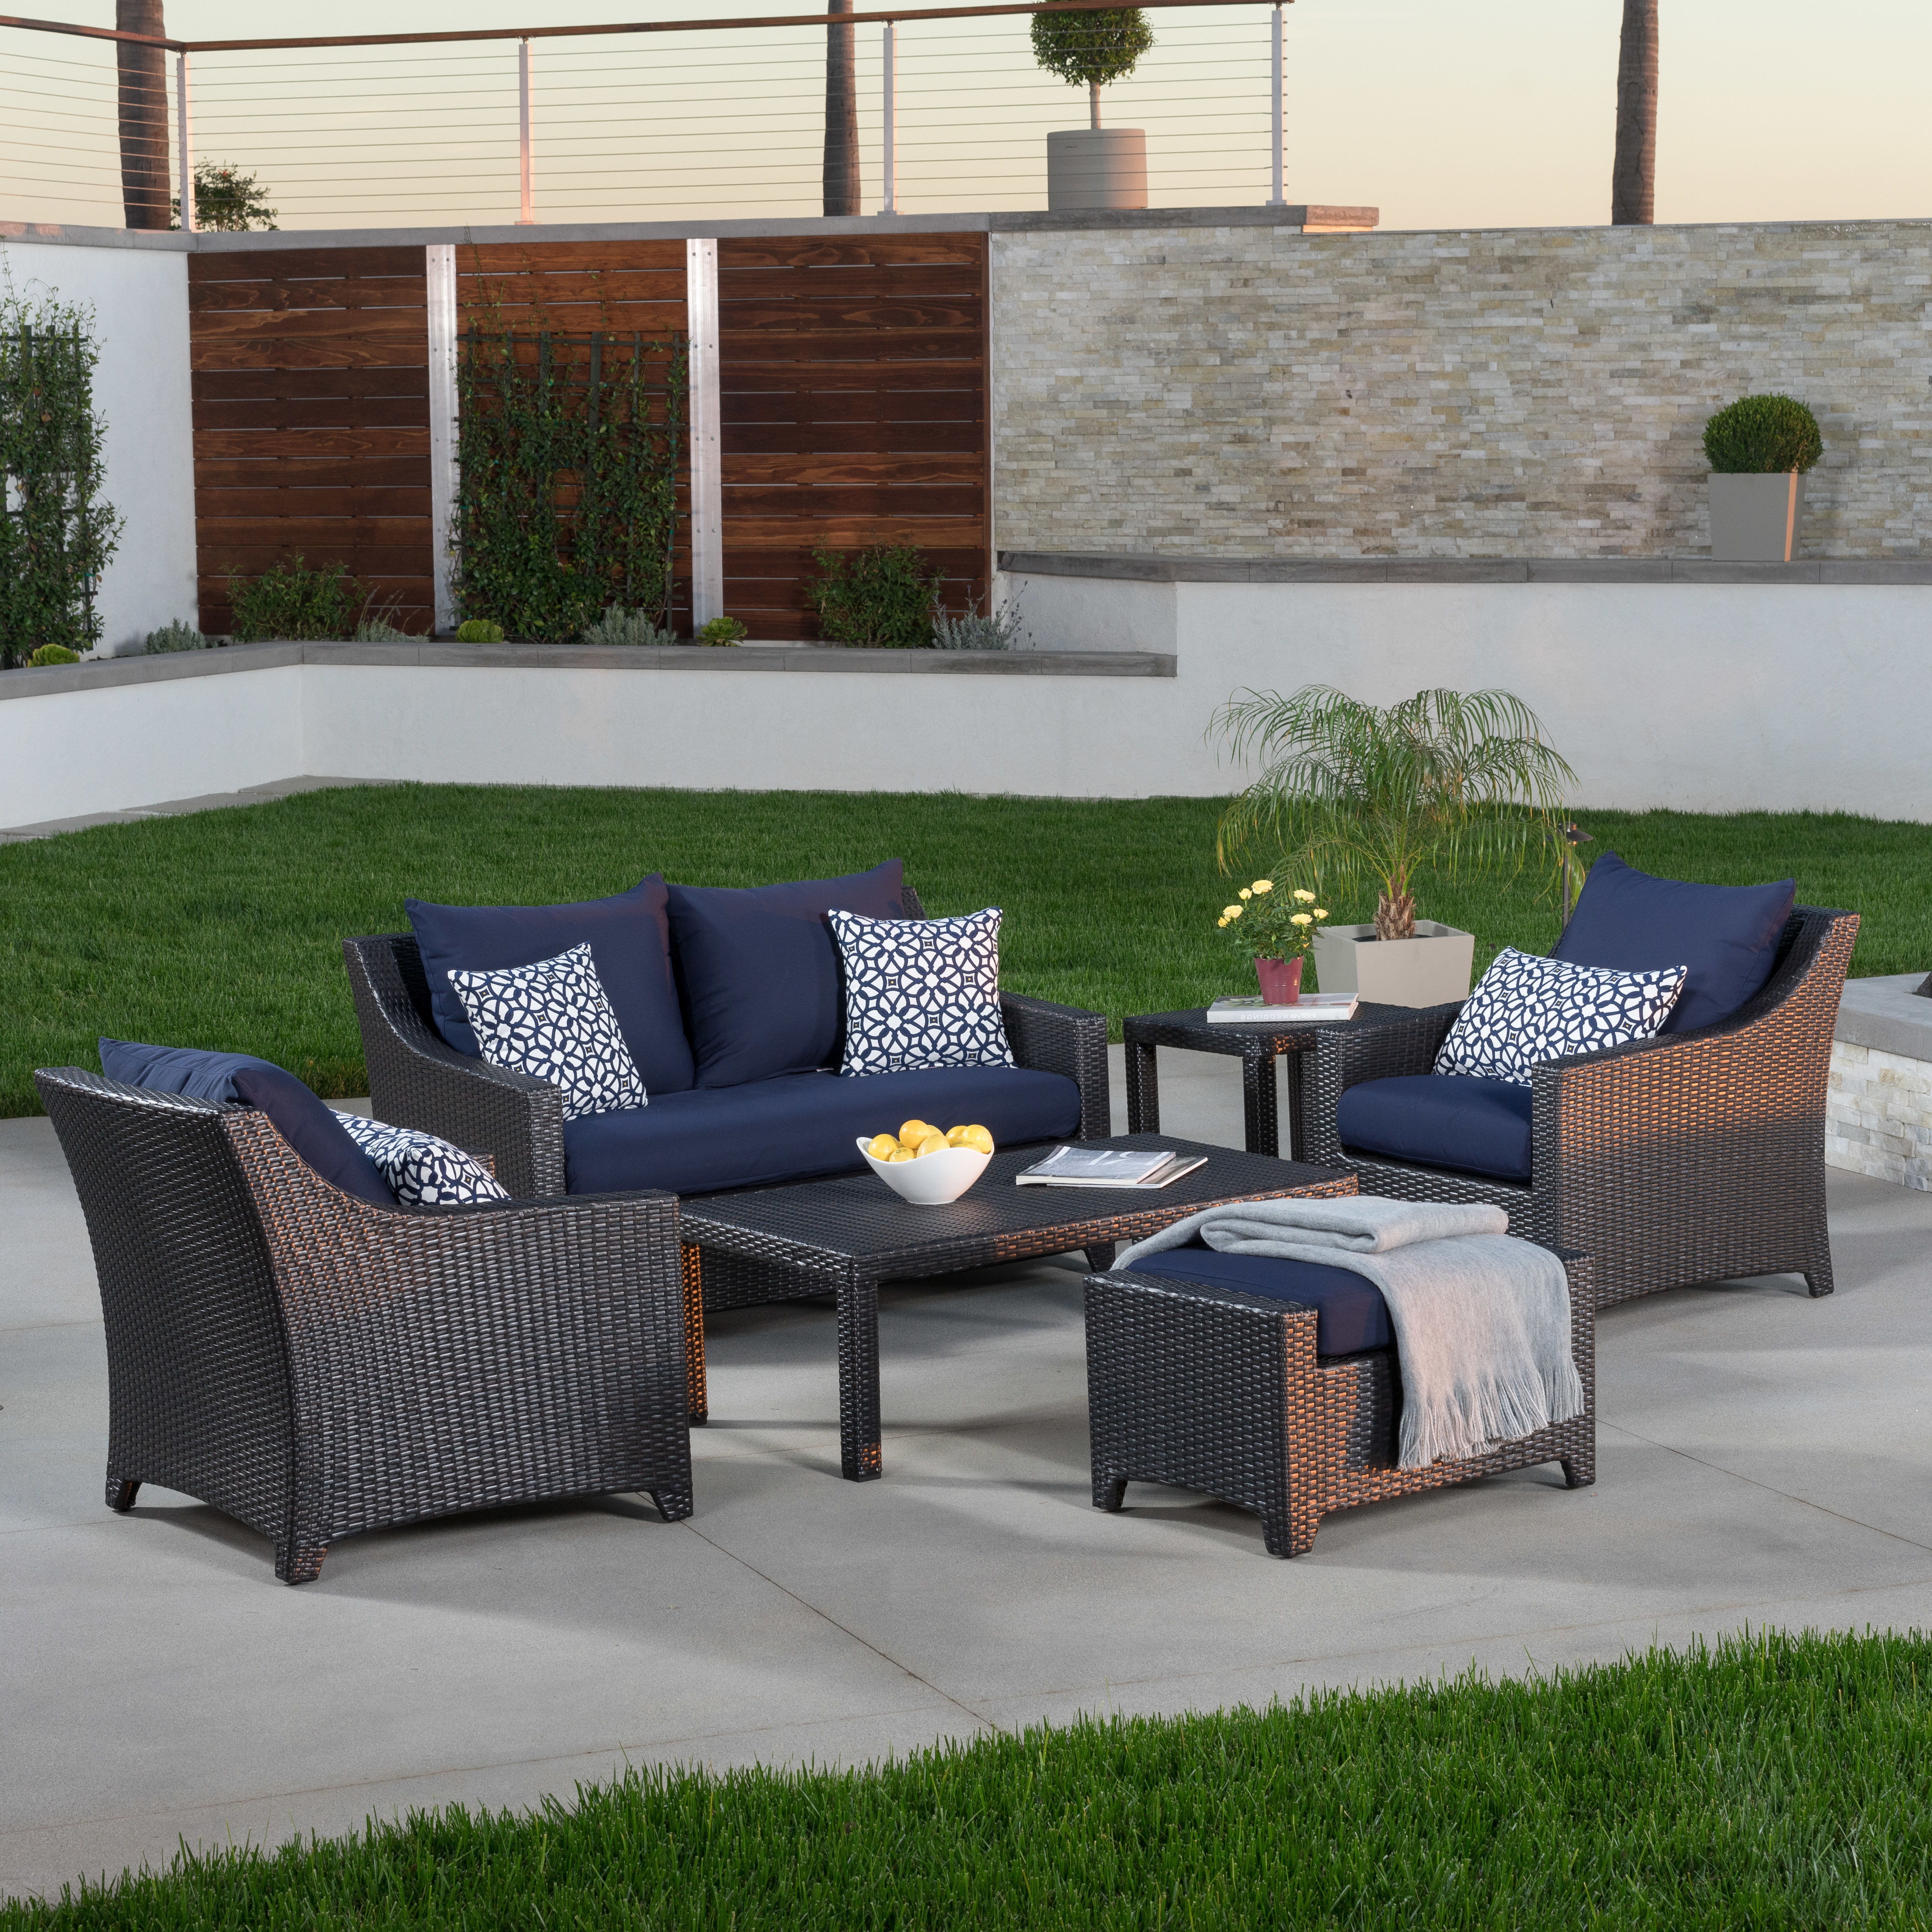 Wayfair With Popular Northridge Patio Sofas With Sunbrella Cushions (View 19 of 20)